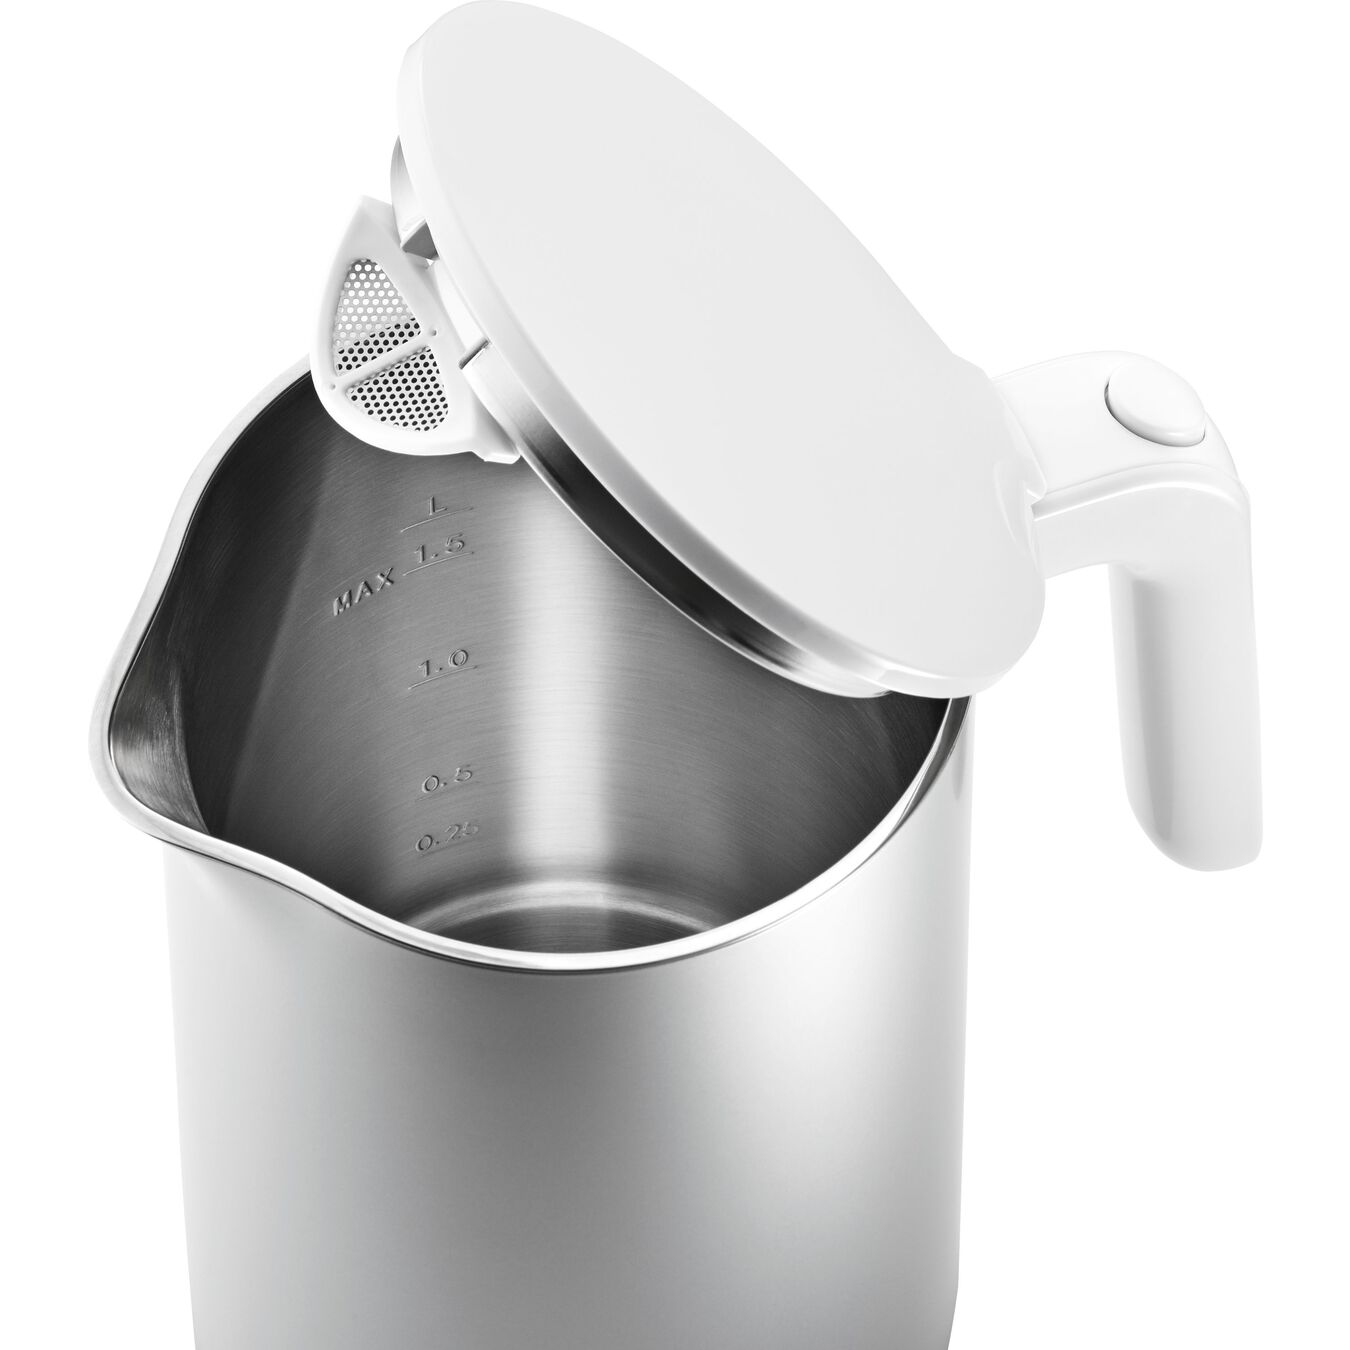 Cool Touch Kettle Pro,,large 6